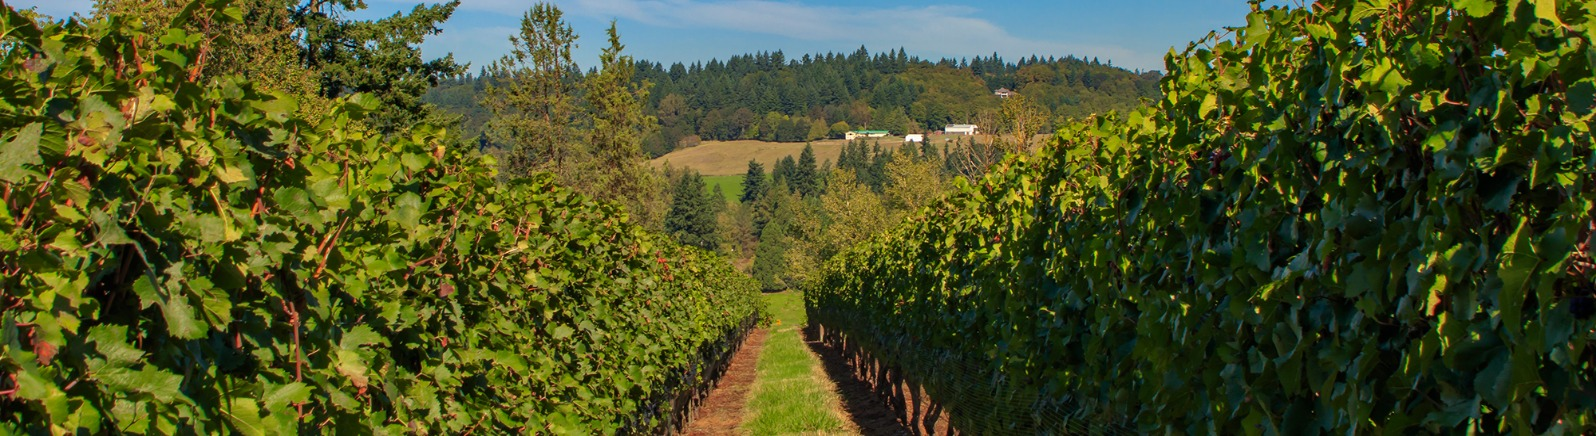 A blue sky view of a farm on the far hillside as seen through two long rows of grapevines at King's Raven Vineyard